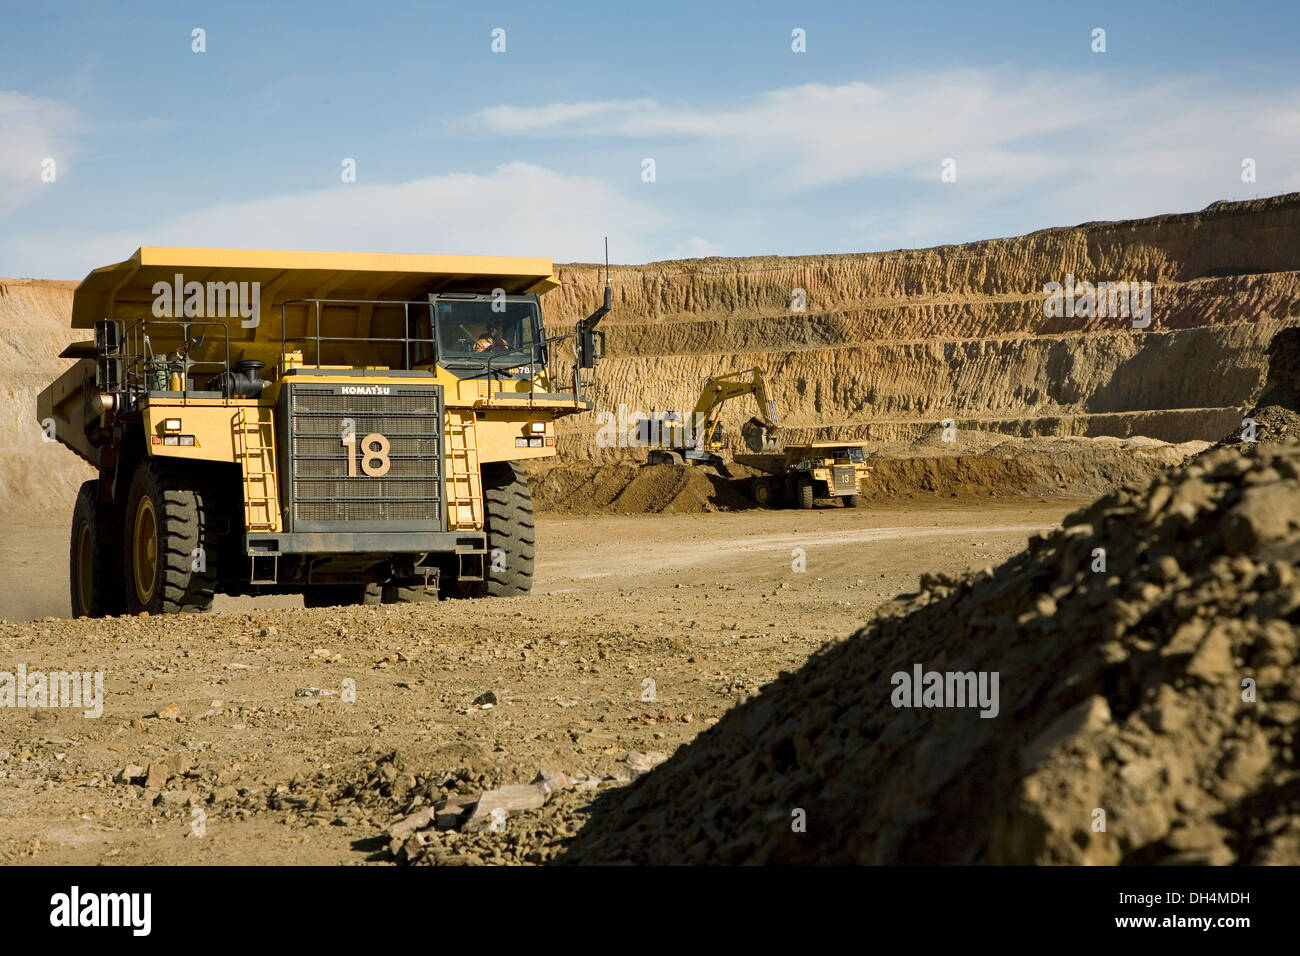 Gold mine operation in open cast surface pit with large haul truck leaving and excavators working behind, Mauritania, - Stock Image